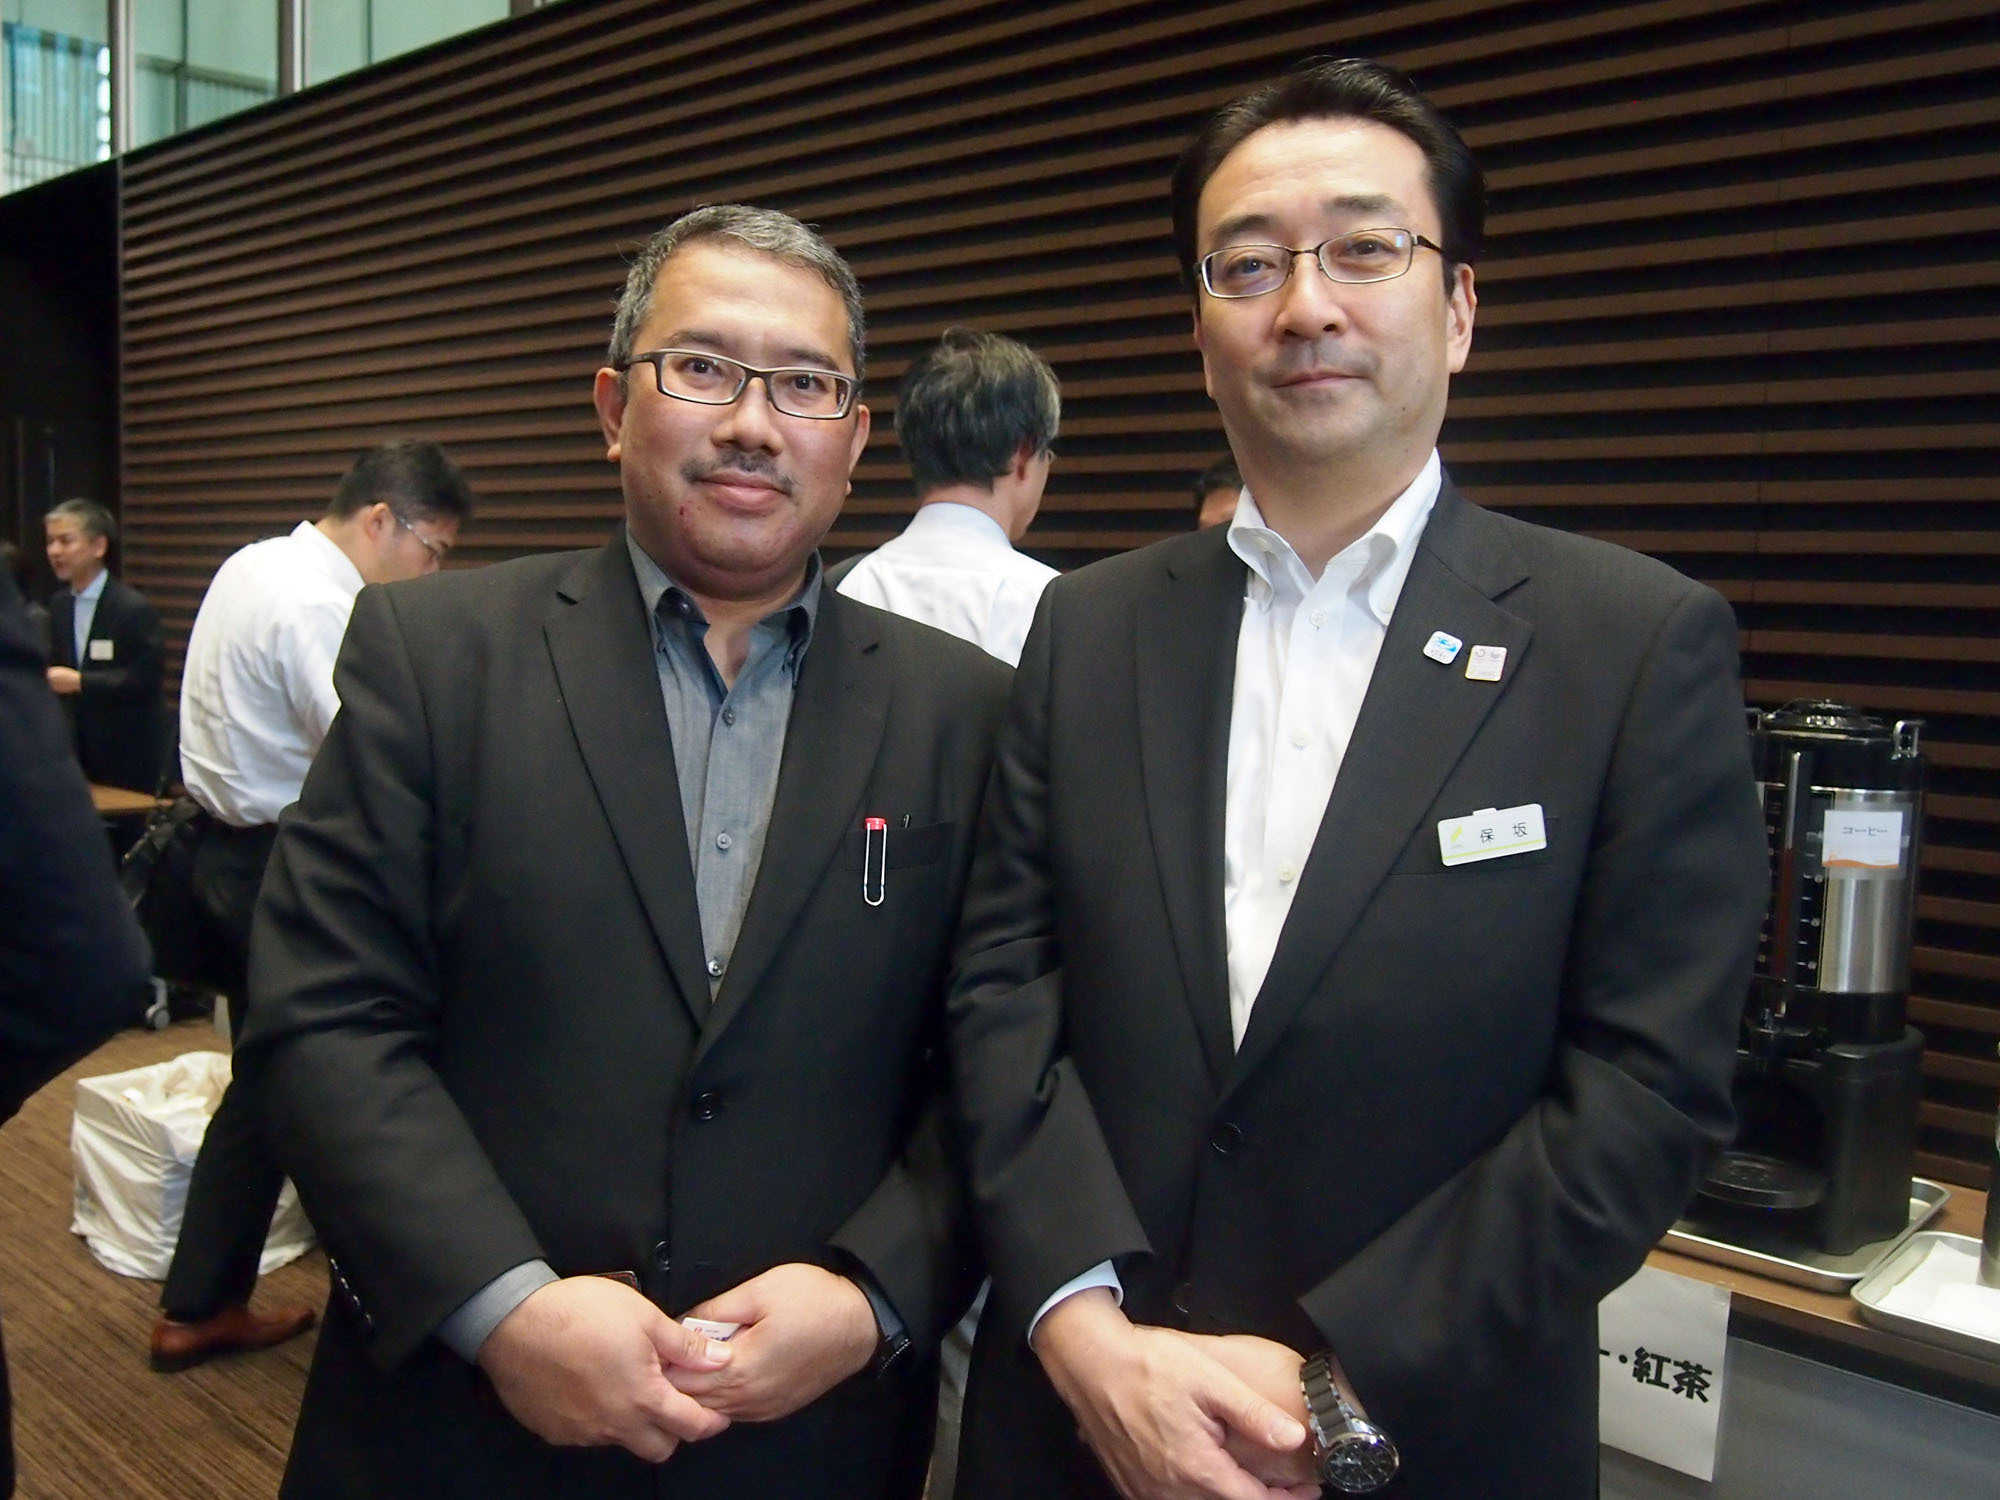 Malaysian Investment Development Authority's Tokyo office director, Zahirul Ishak (left), poses for a photo with Koichi Hosaka, joint general manager of Sumitomo Mitsui Banking Corp., Tokyo at the Dialogue Session for Investment Opportunities in Food and the Halal Industry in Malaysia at SMBC headquarters in Tokyo on Sept. 26. |  EDLEEN OTHMAN